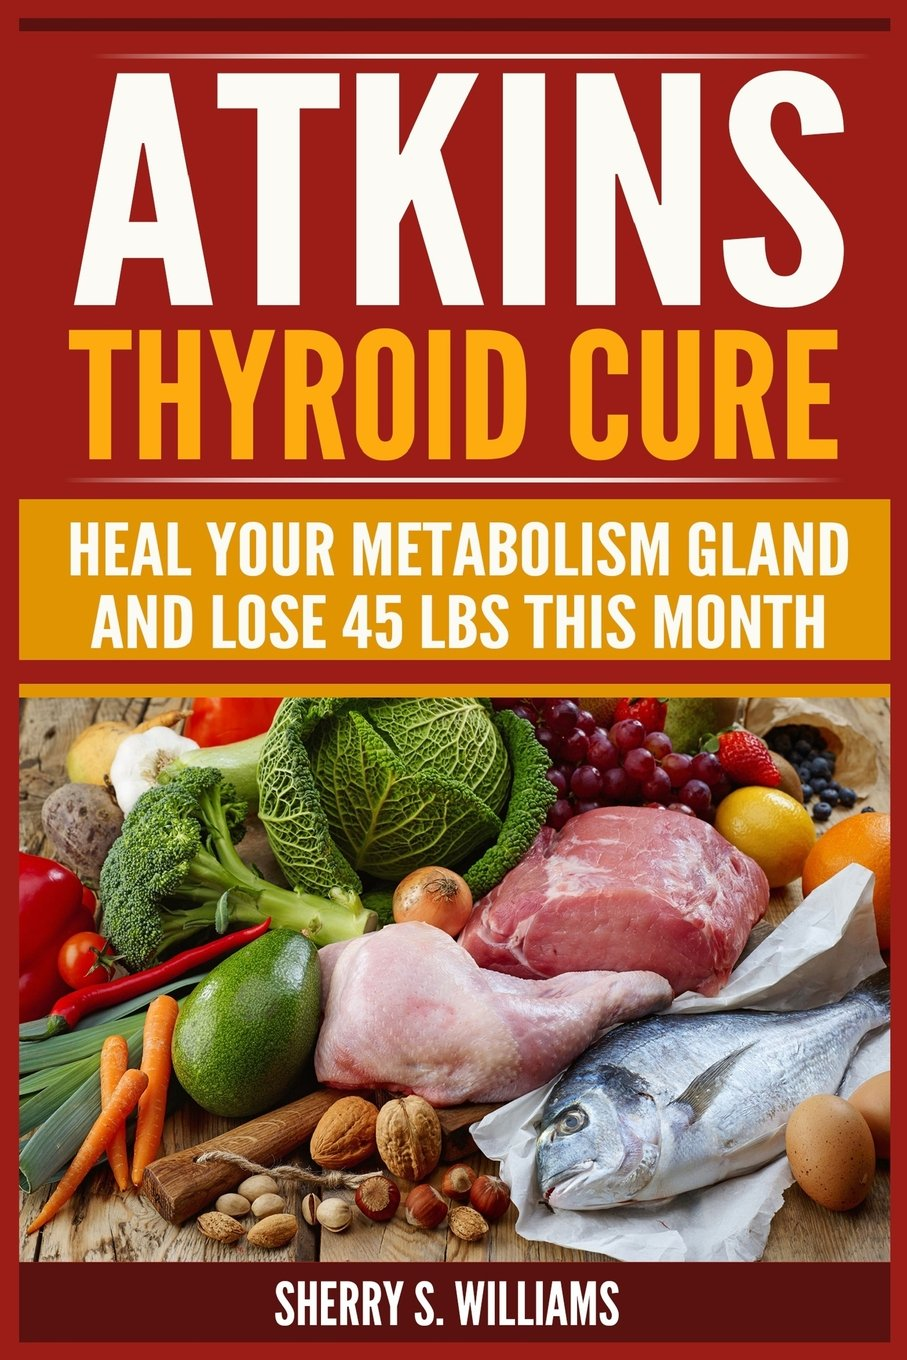 Download Atkins Thyroid Cure: Heal Your Metabolism Gland And Lose 45 lbs This Month PDF